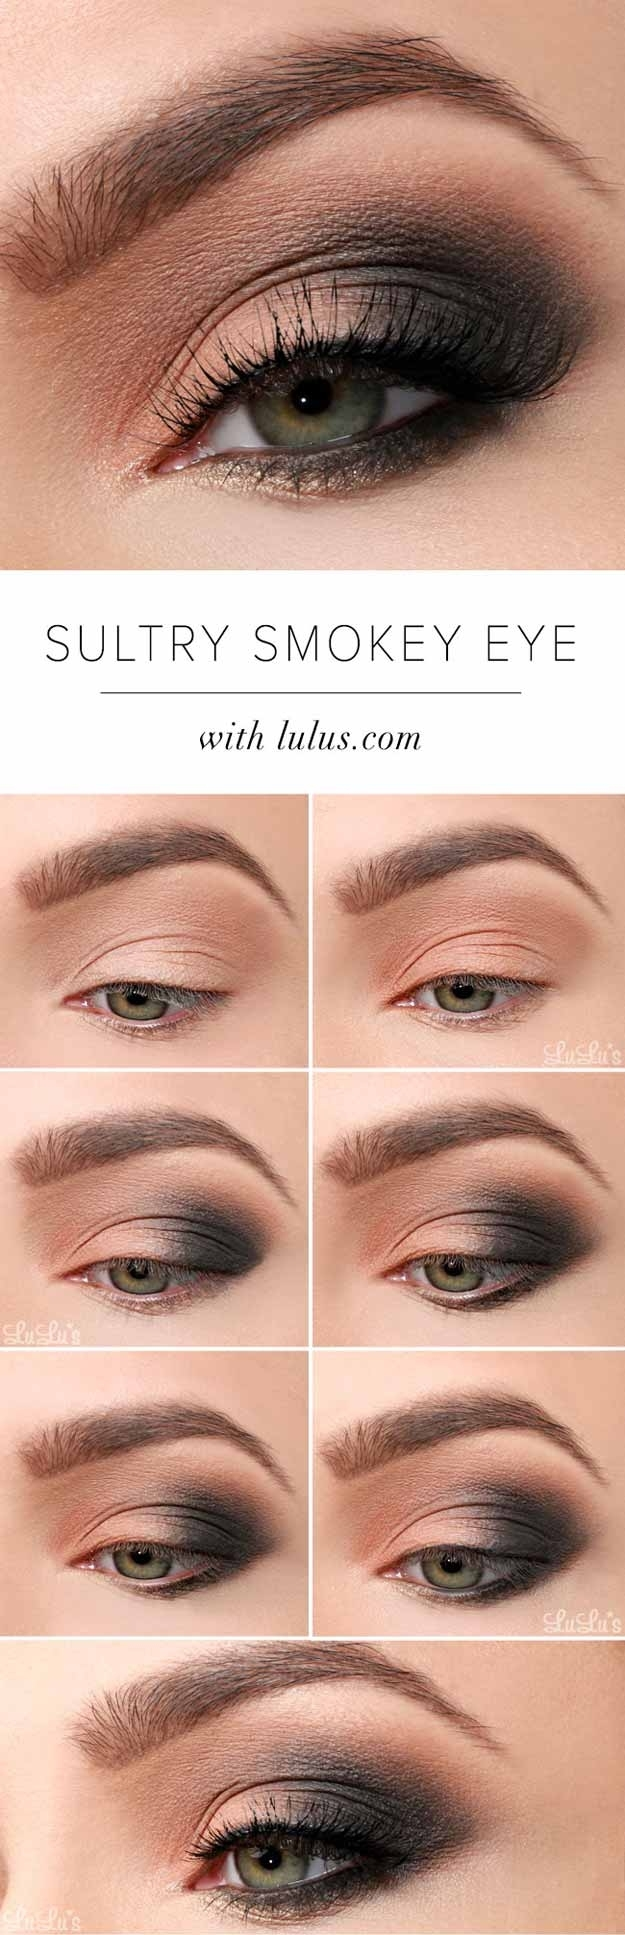 35 Wedding Makeup For Blue Eyes - The Goddess for How To Do Makeup For Blue Eyes And Brown Hair